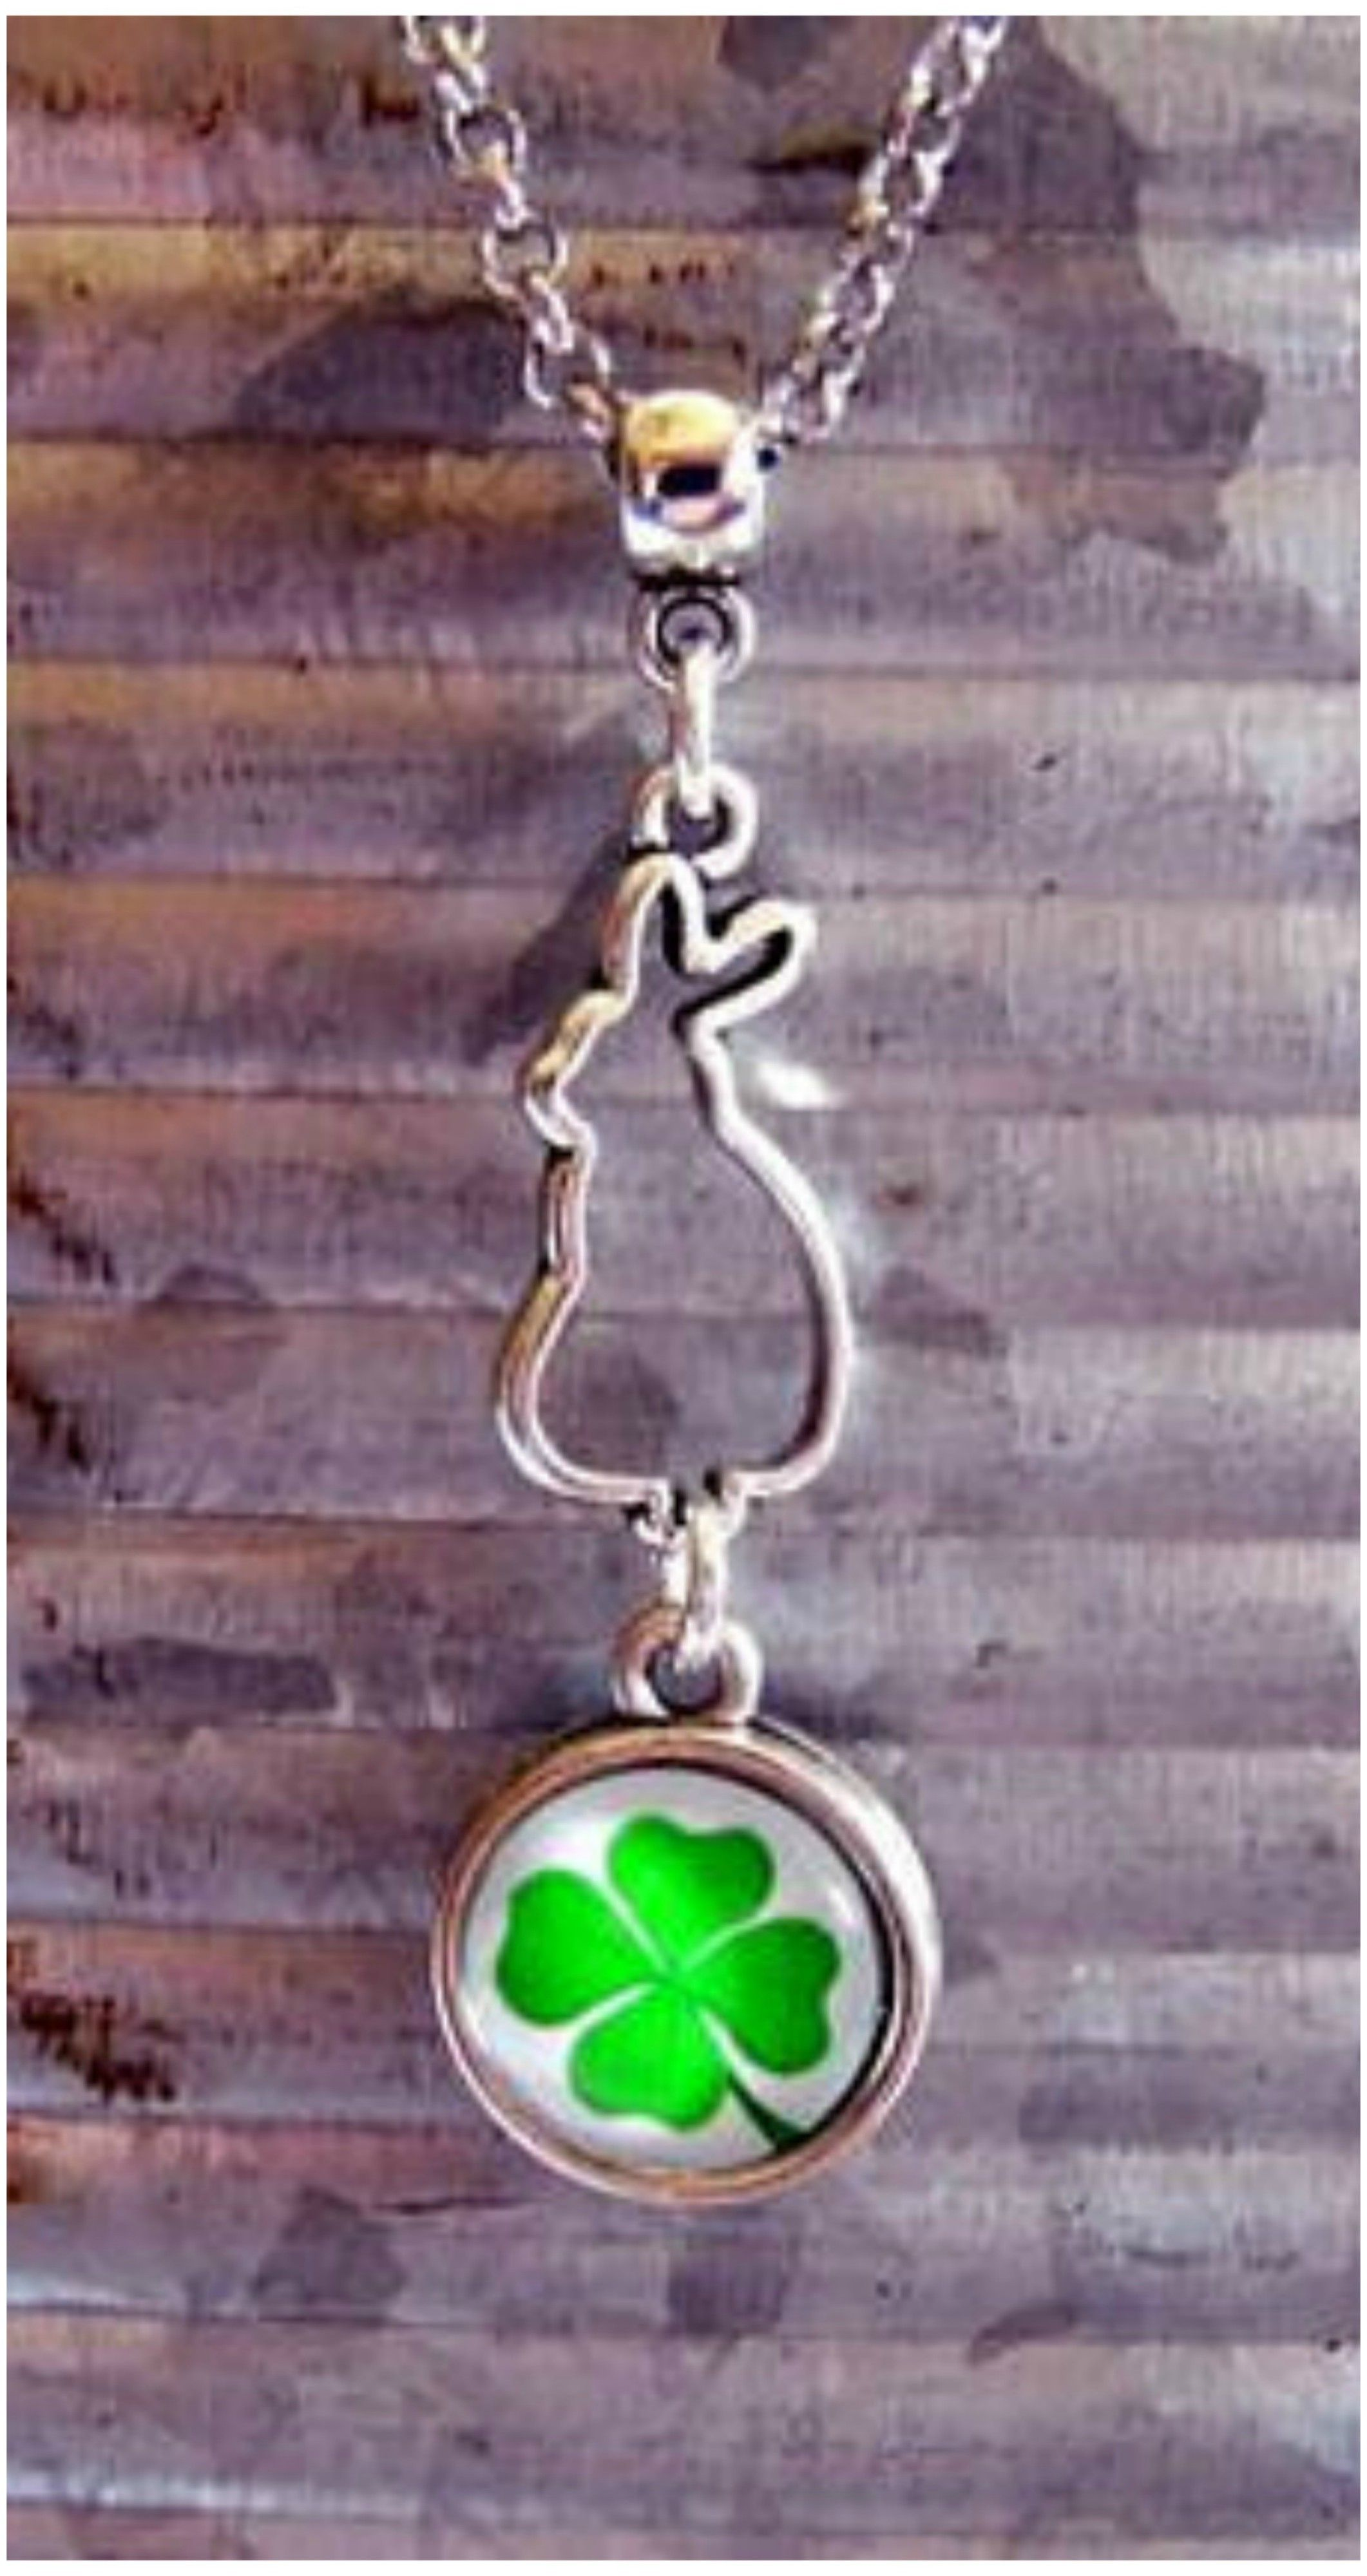 4 H Rabbit Charm Necklace A Great Way To Celebrate The 4